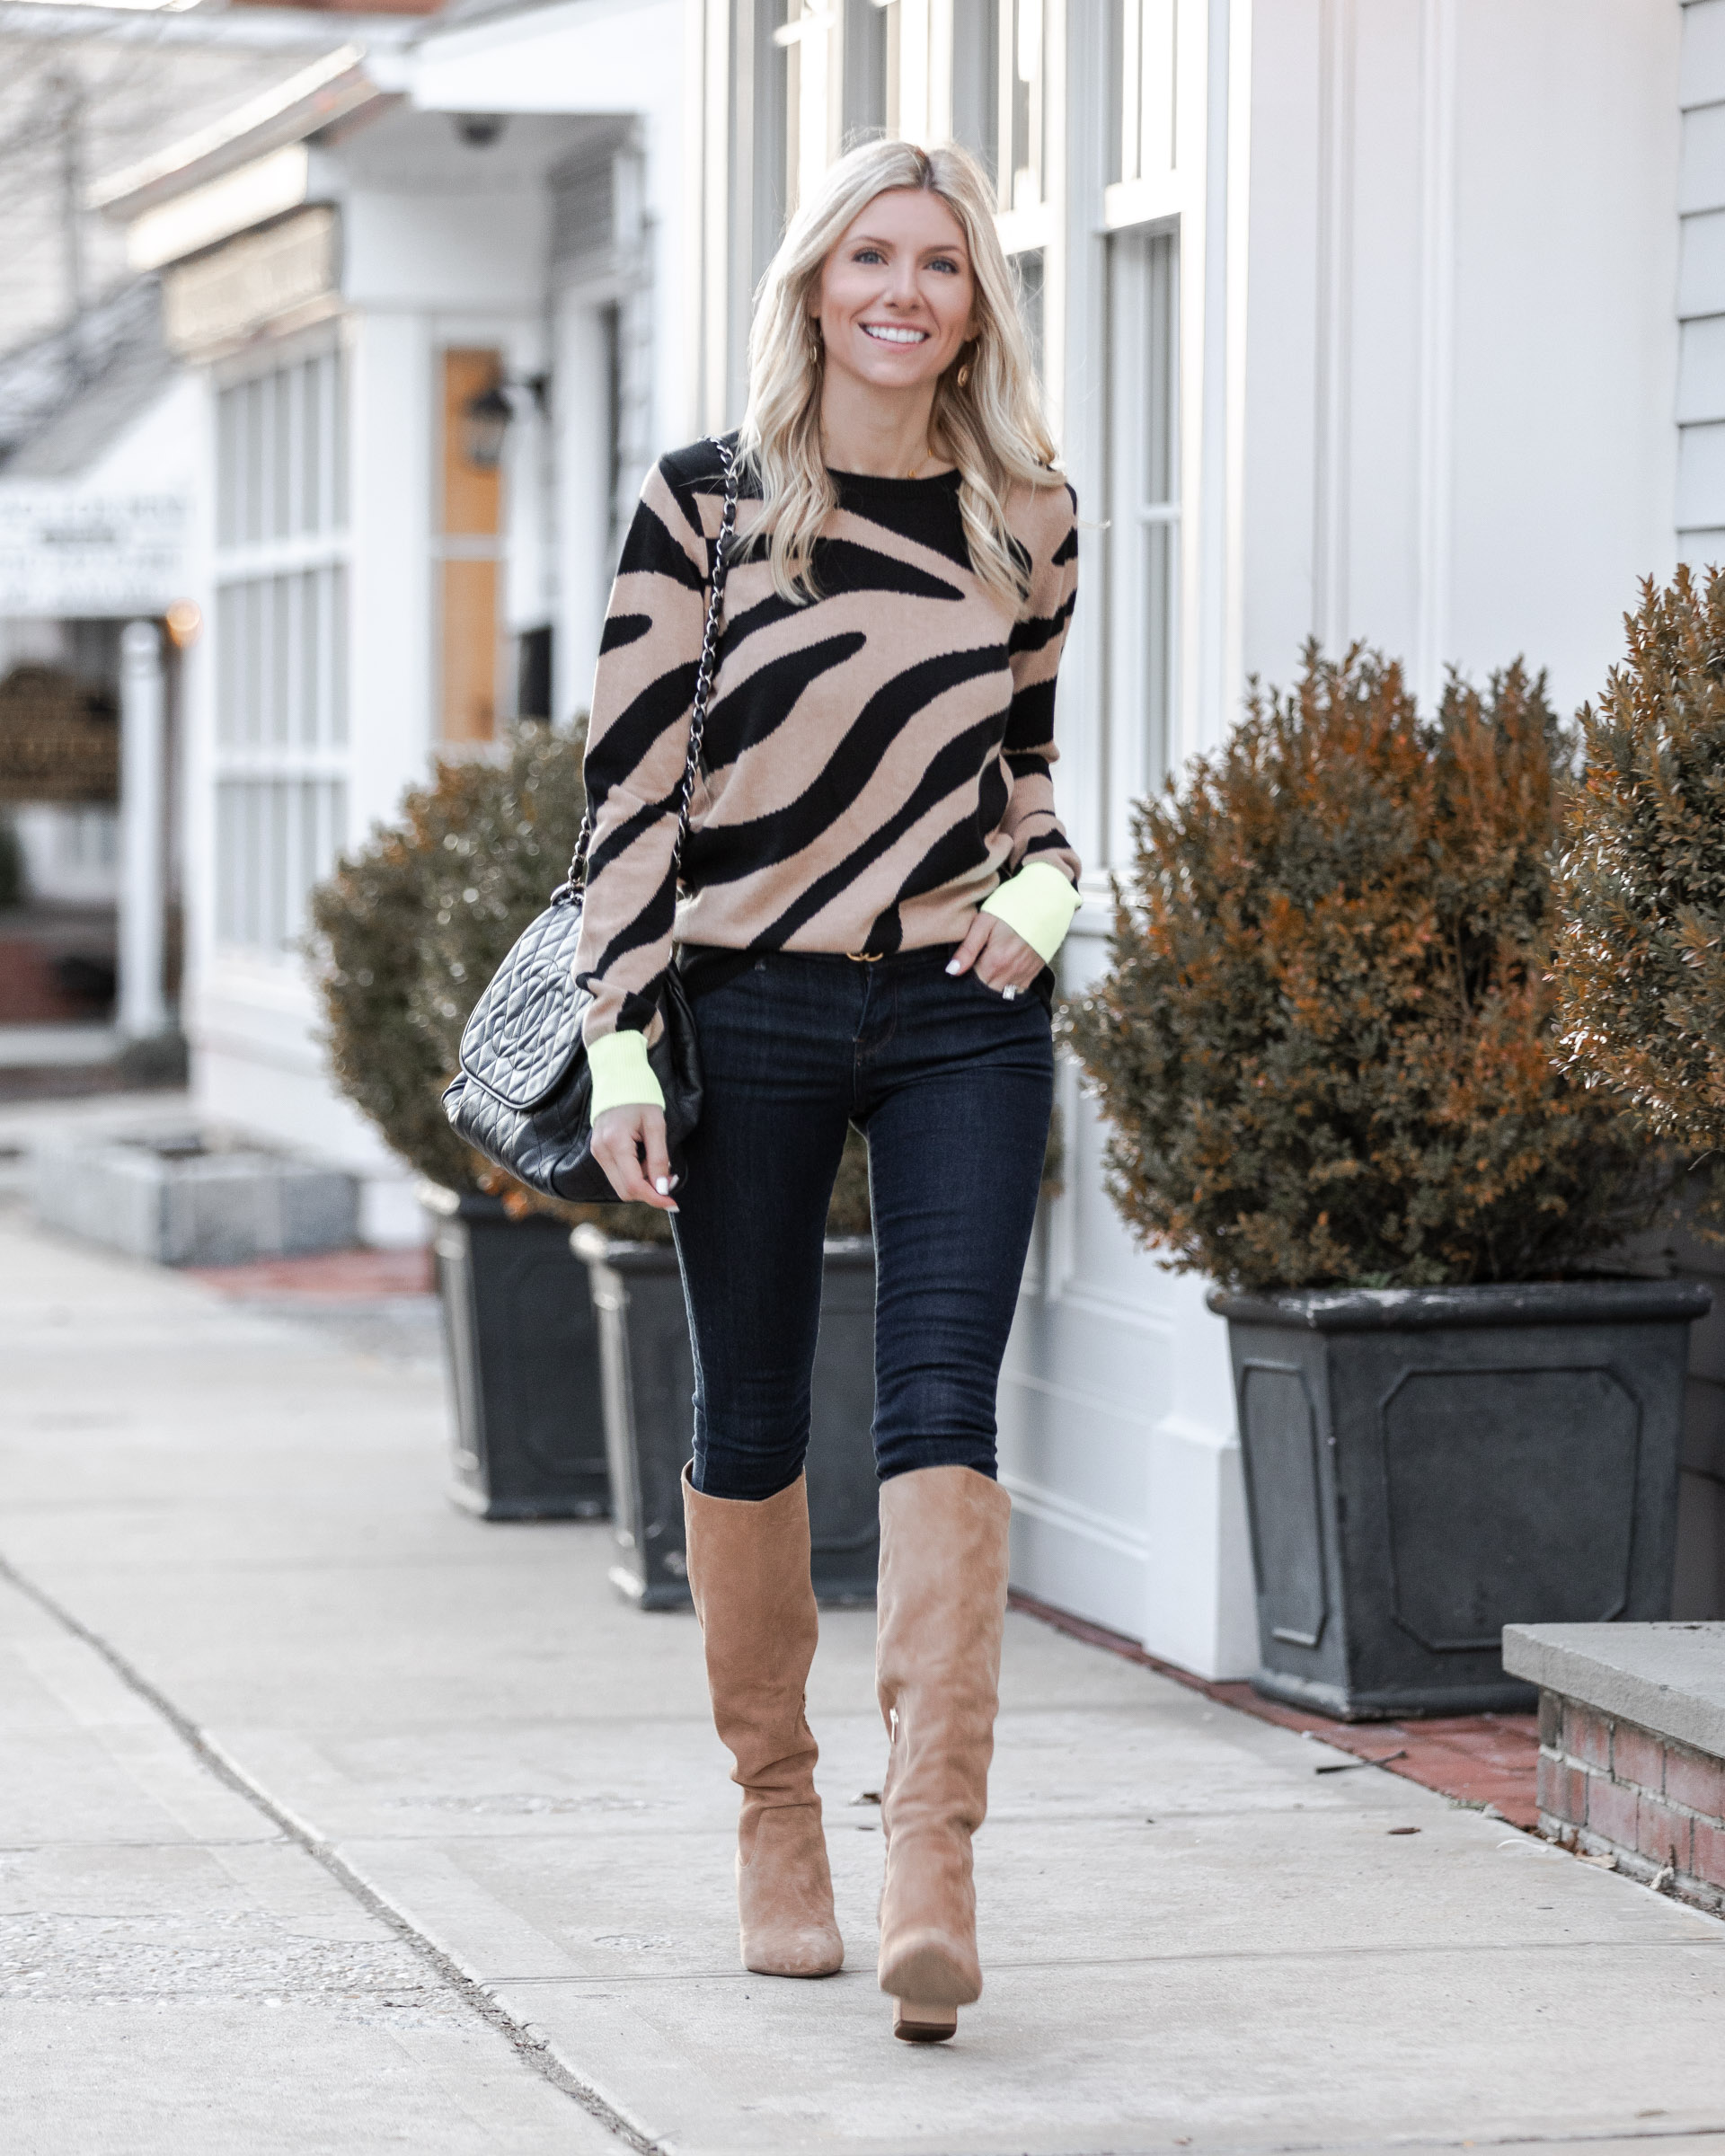 jeans-and-zebra-sweater-outfit-the-glamorous-gal